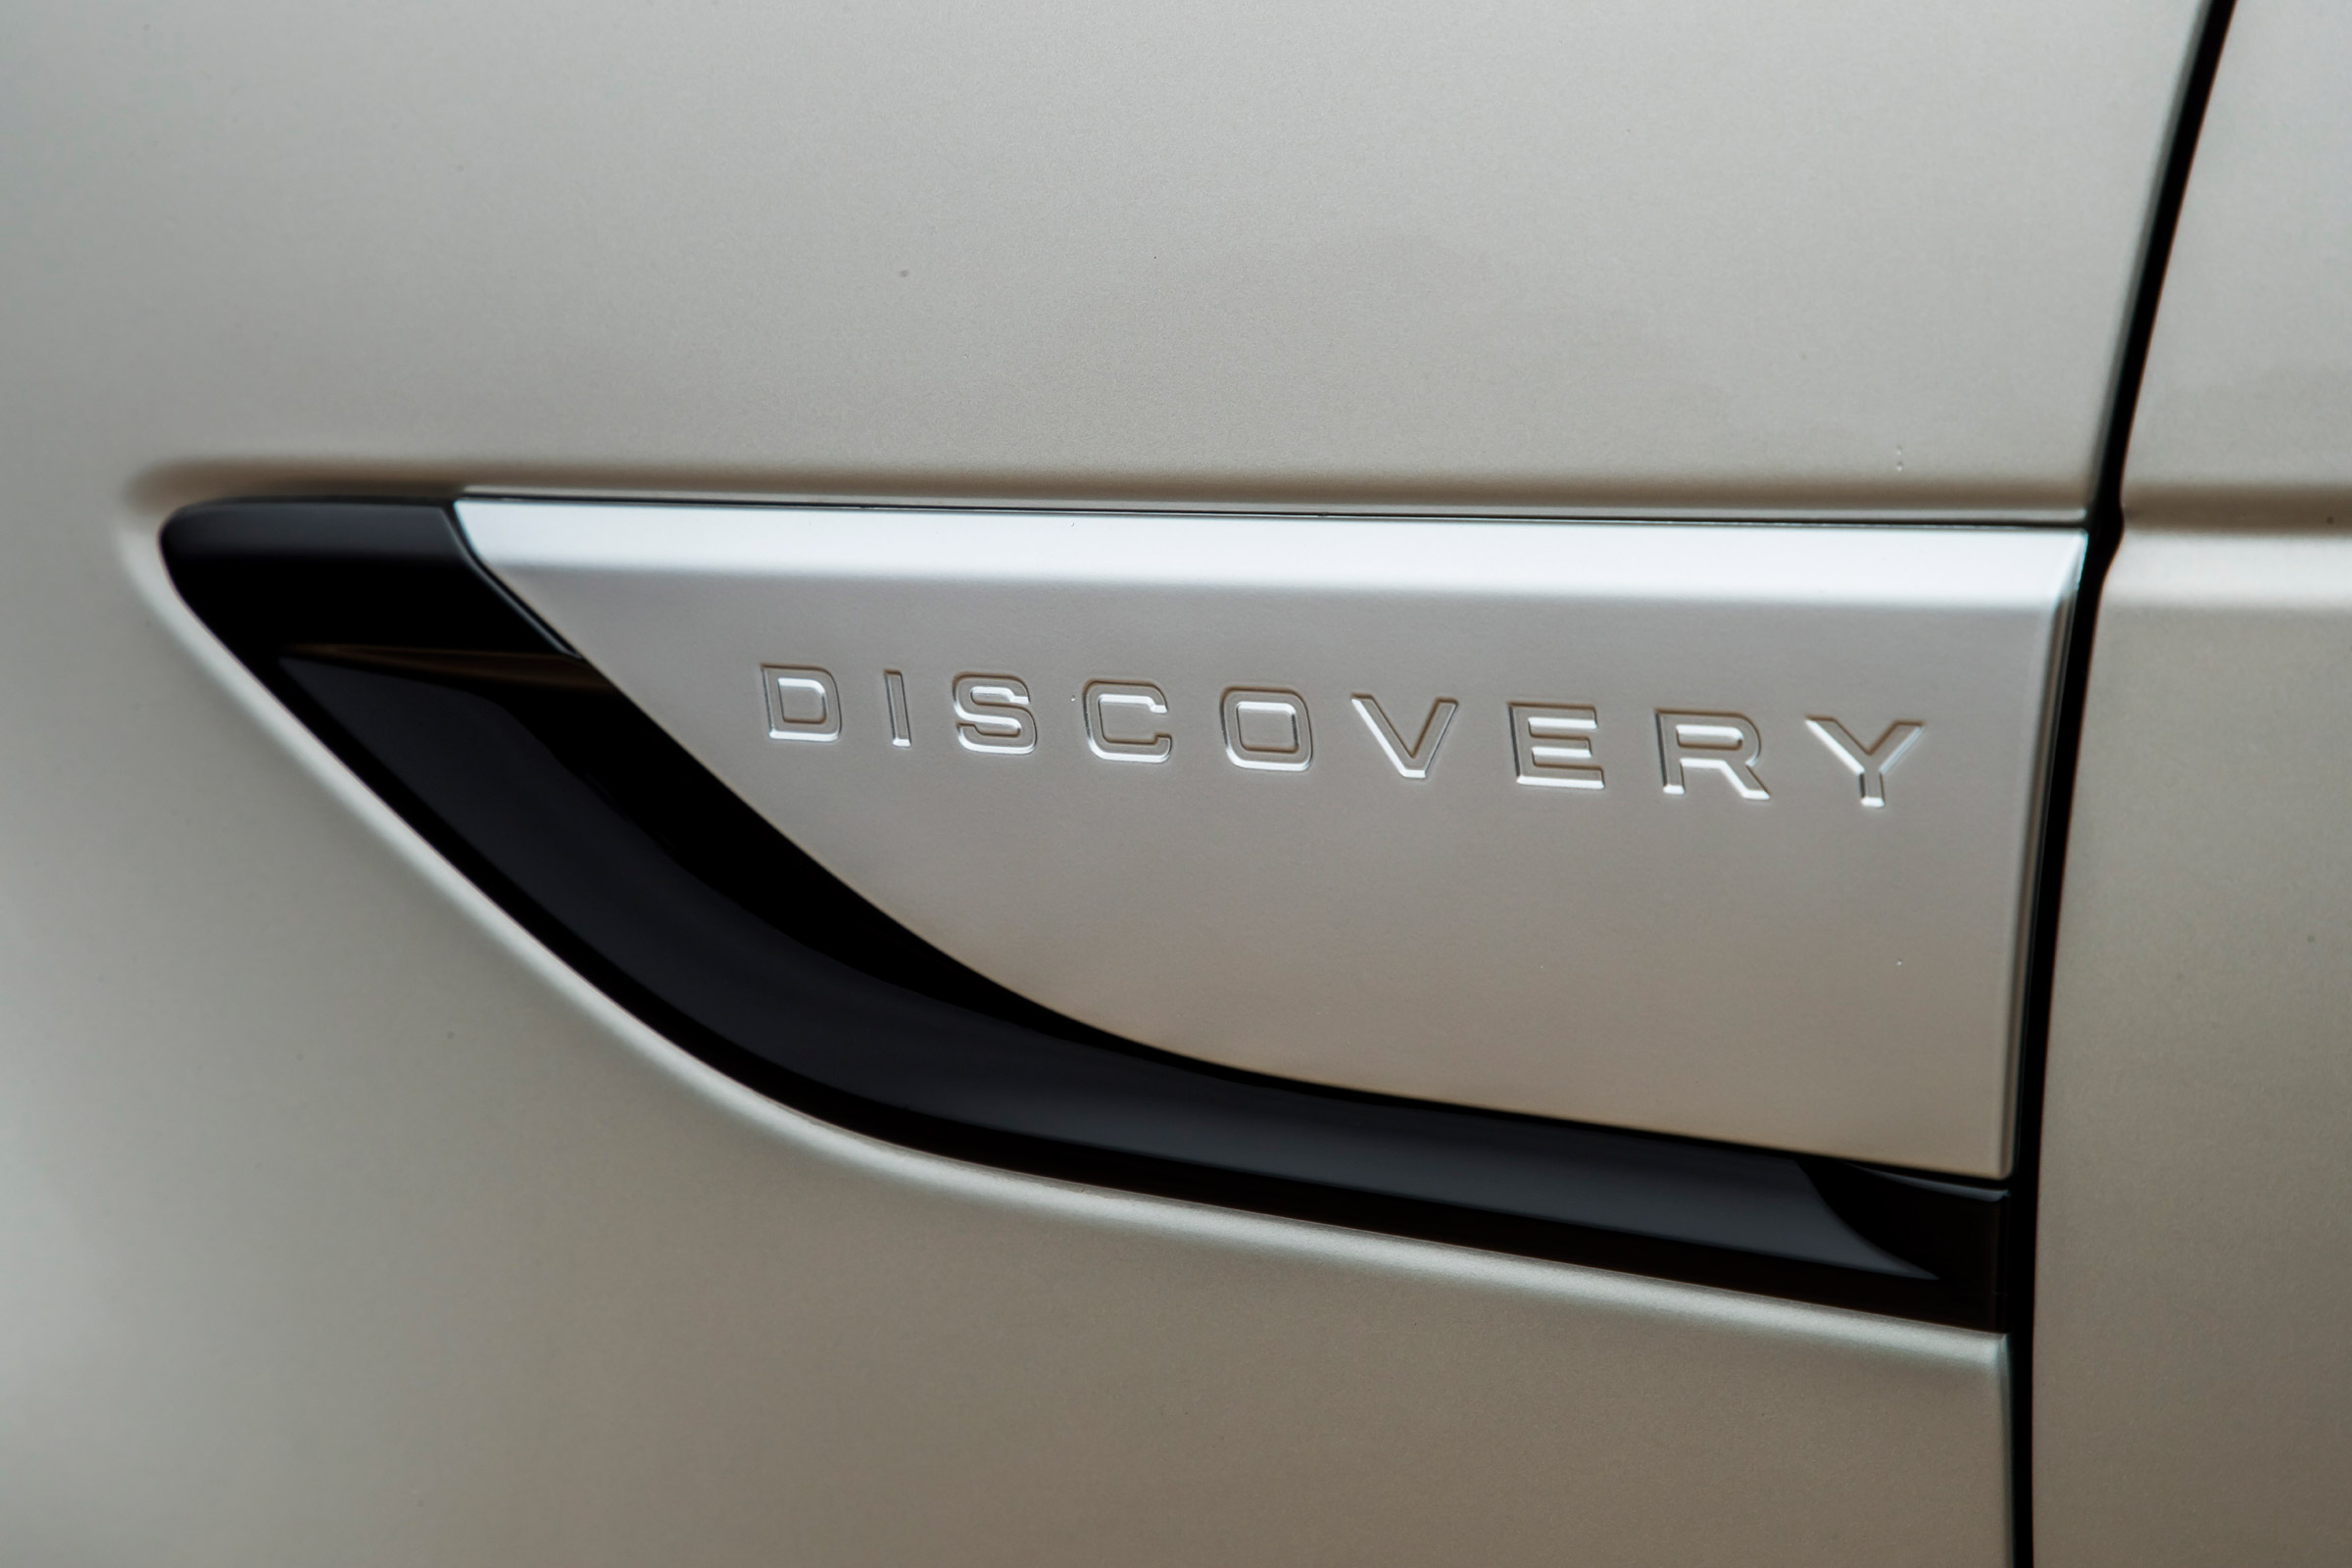 2017 Land Rover Discovery Exterior View Side Emblem (Photo 2 of 17)